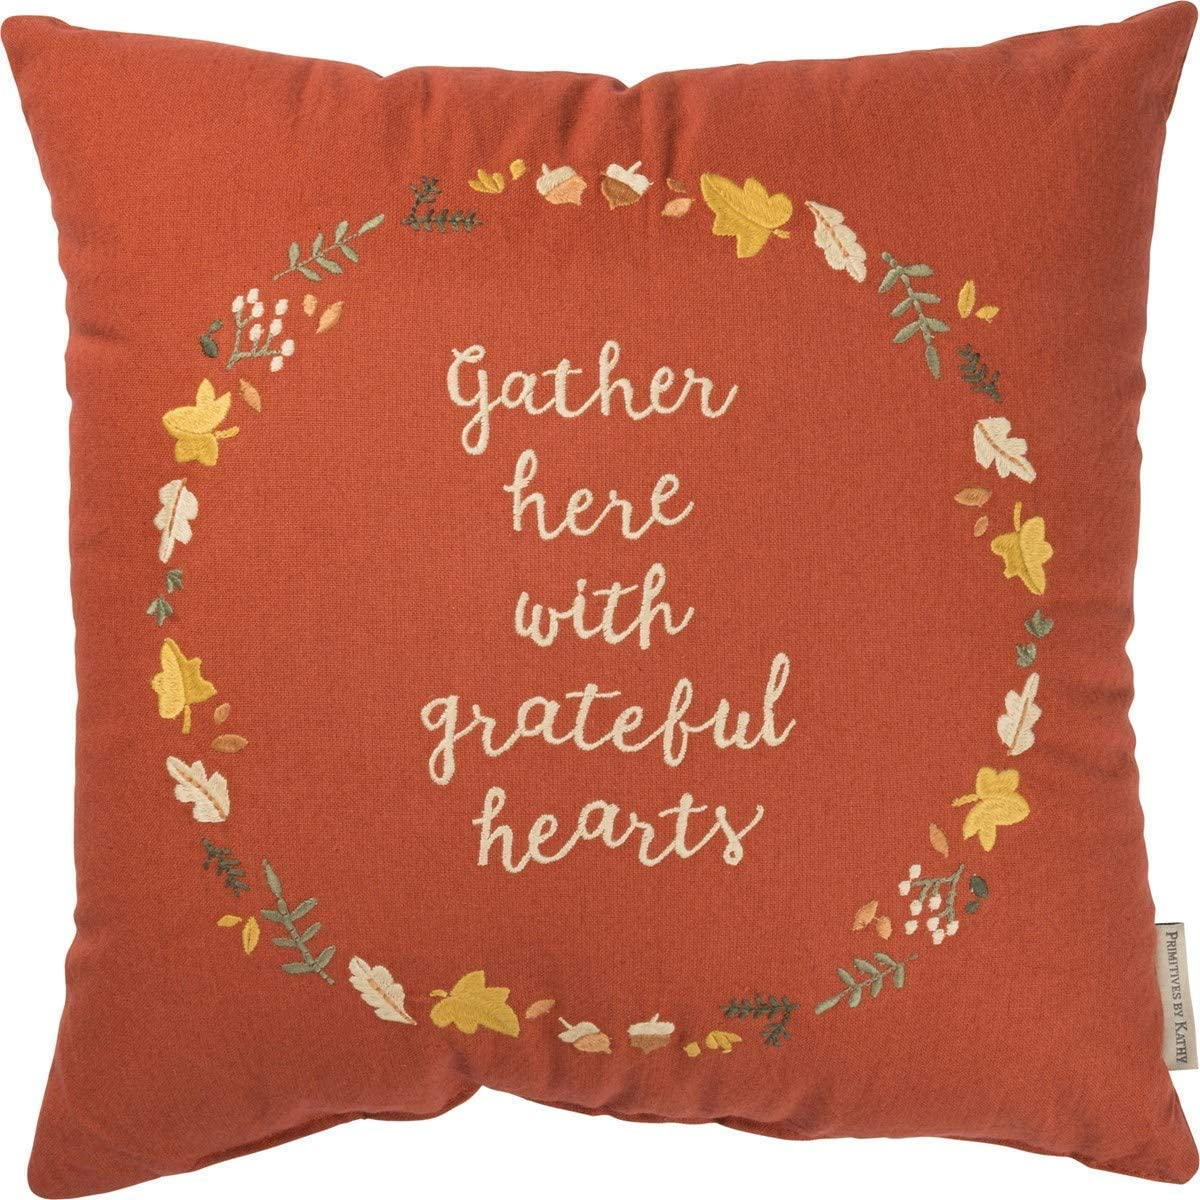 Primitives By Kathy Sentiment Pillow - Gather Here with Grateful Hearts